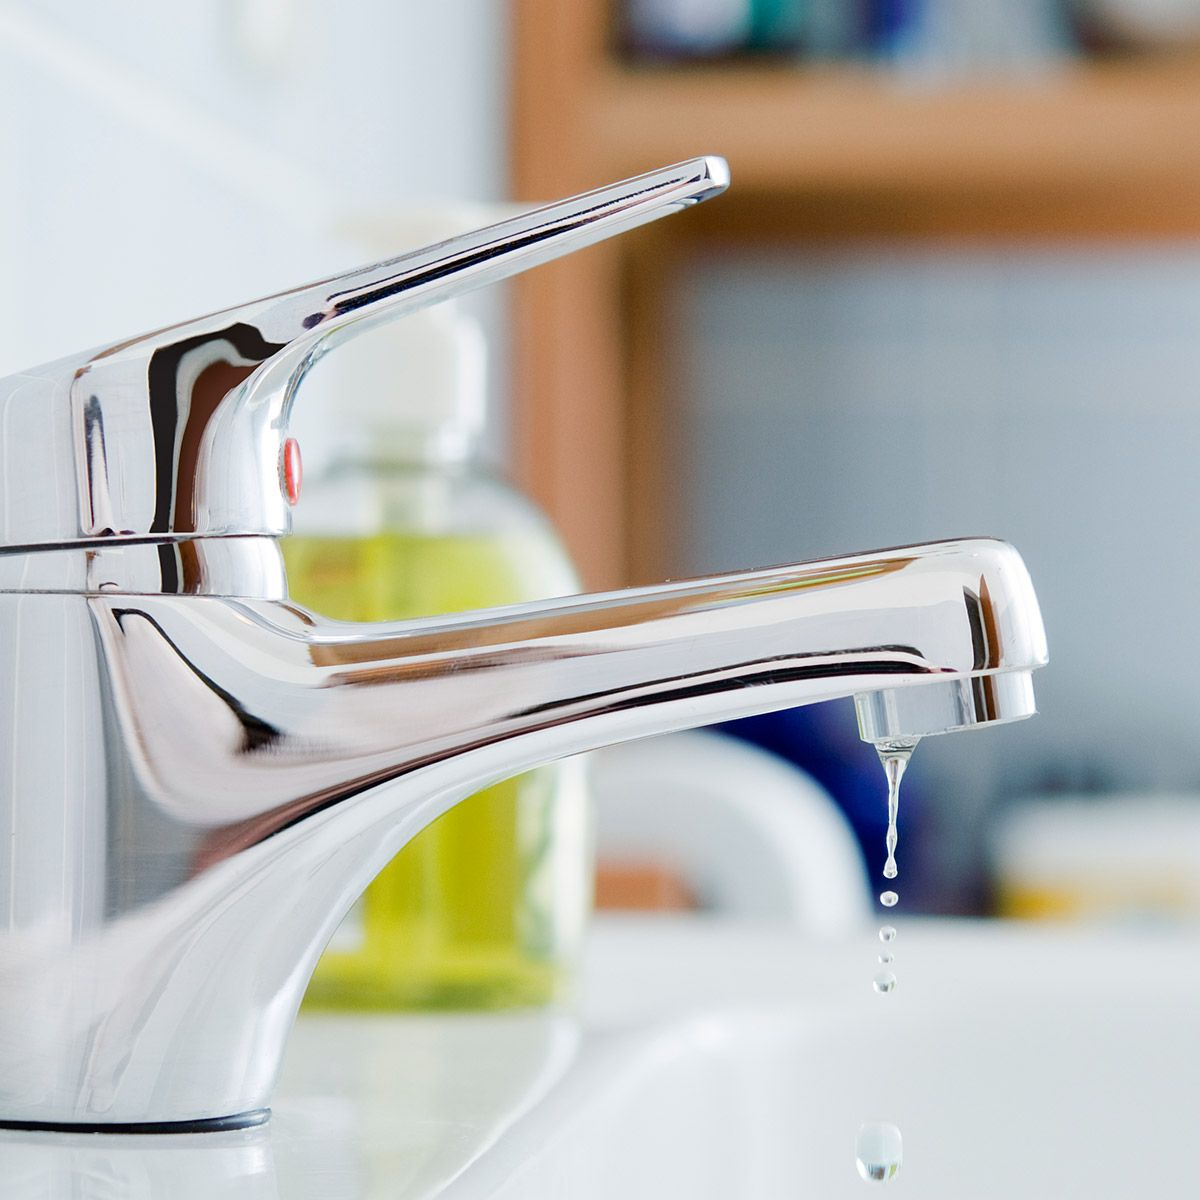 What you need to know to remove limescale Leaky faucet